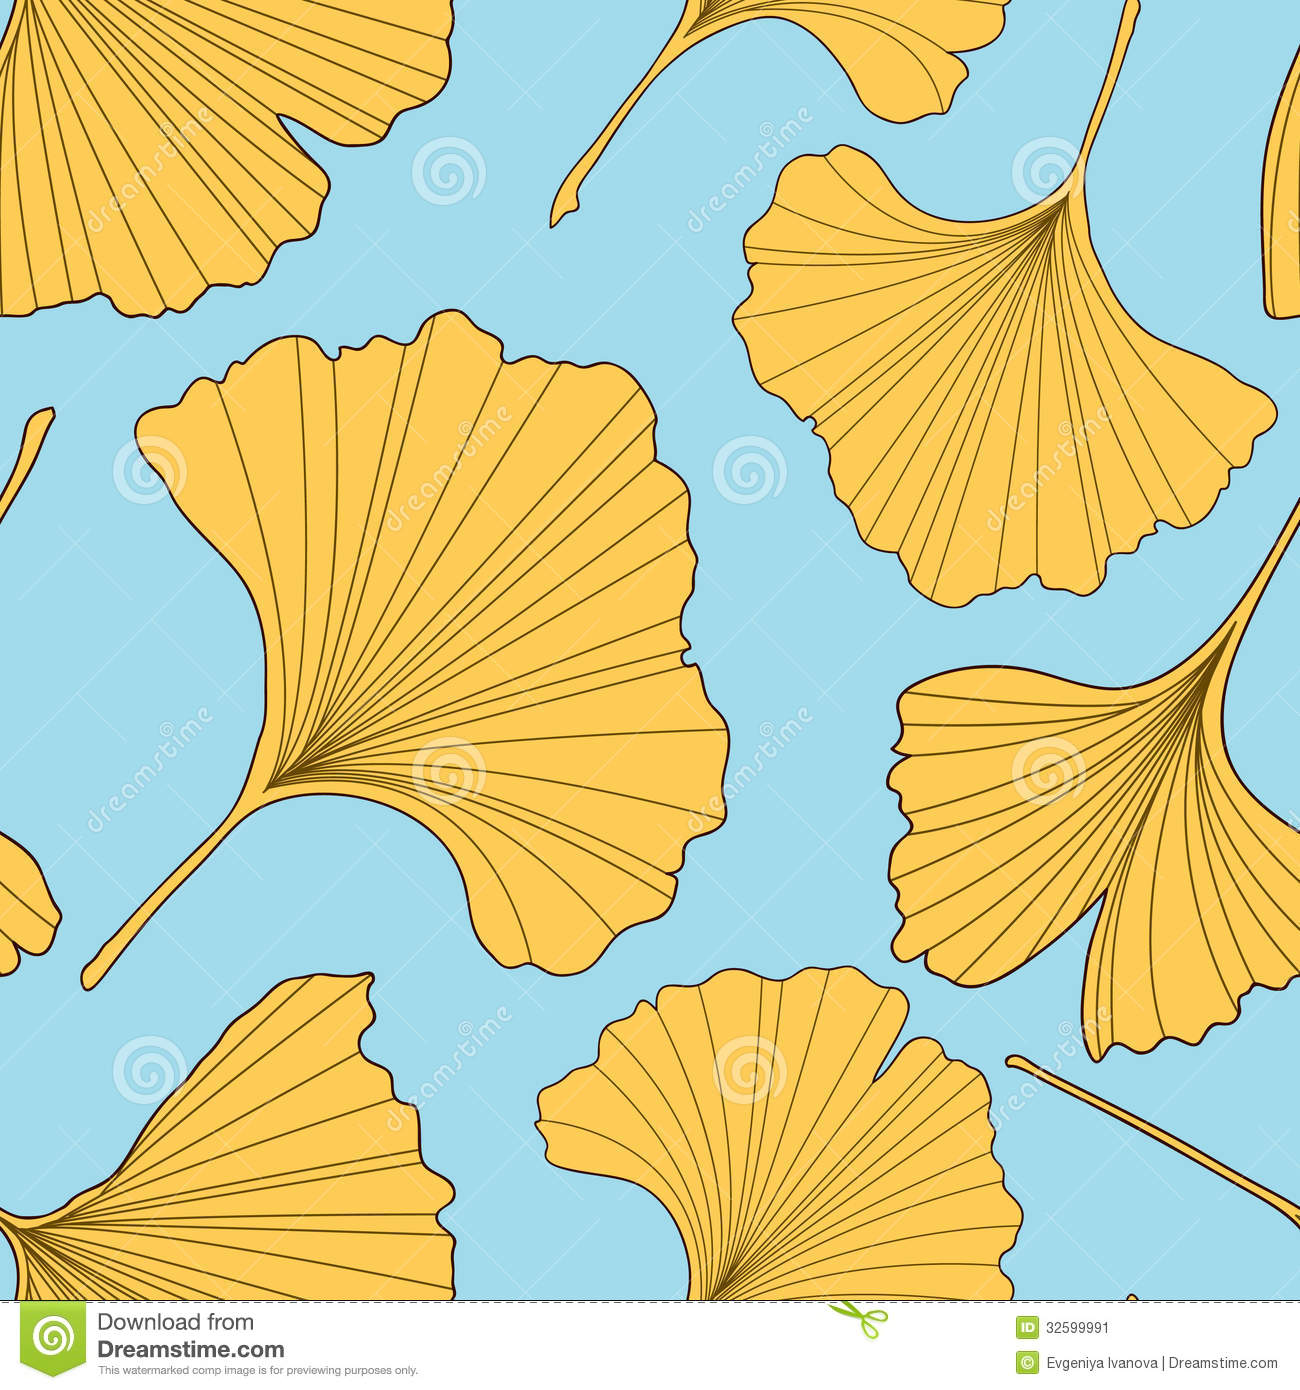 Falling Leaves Wallpaper Free Download Ginkgo Leaves Seamless Pattern Stock Image Image 32599991